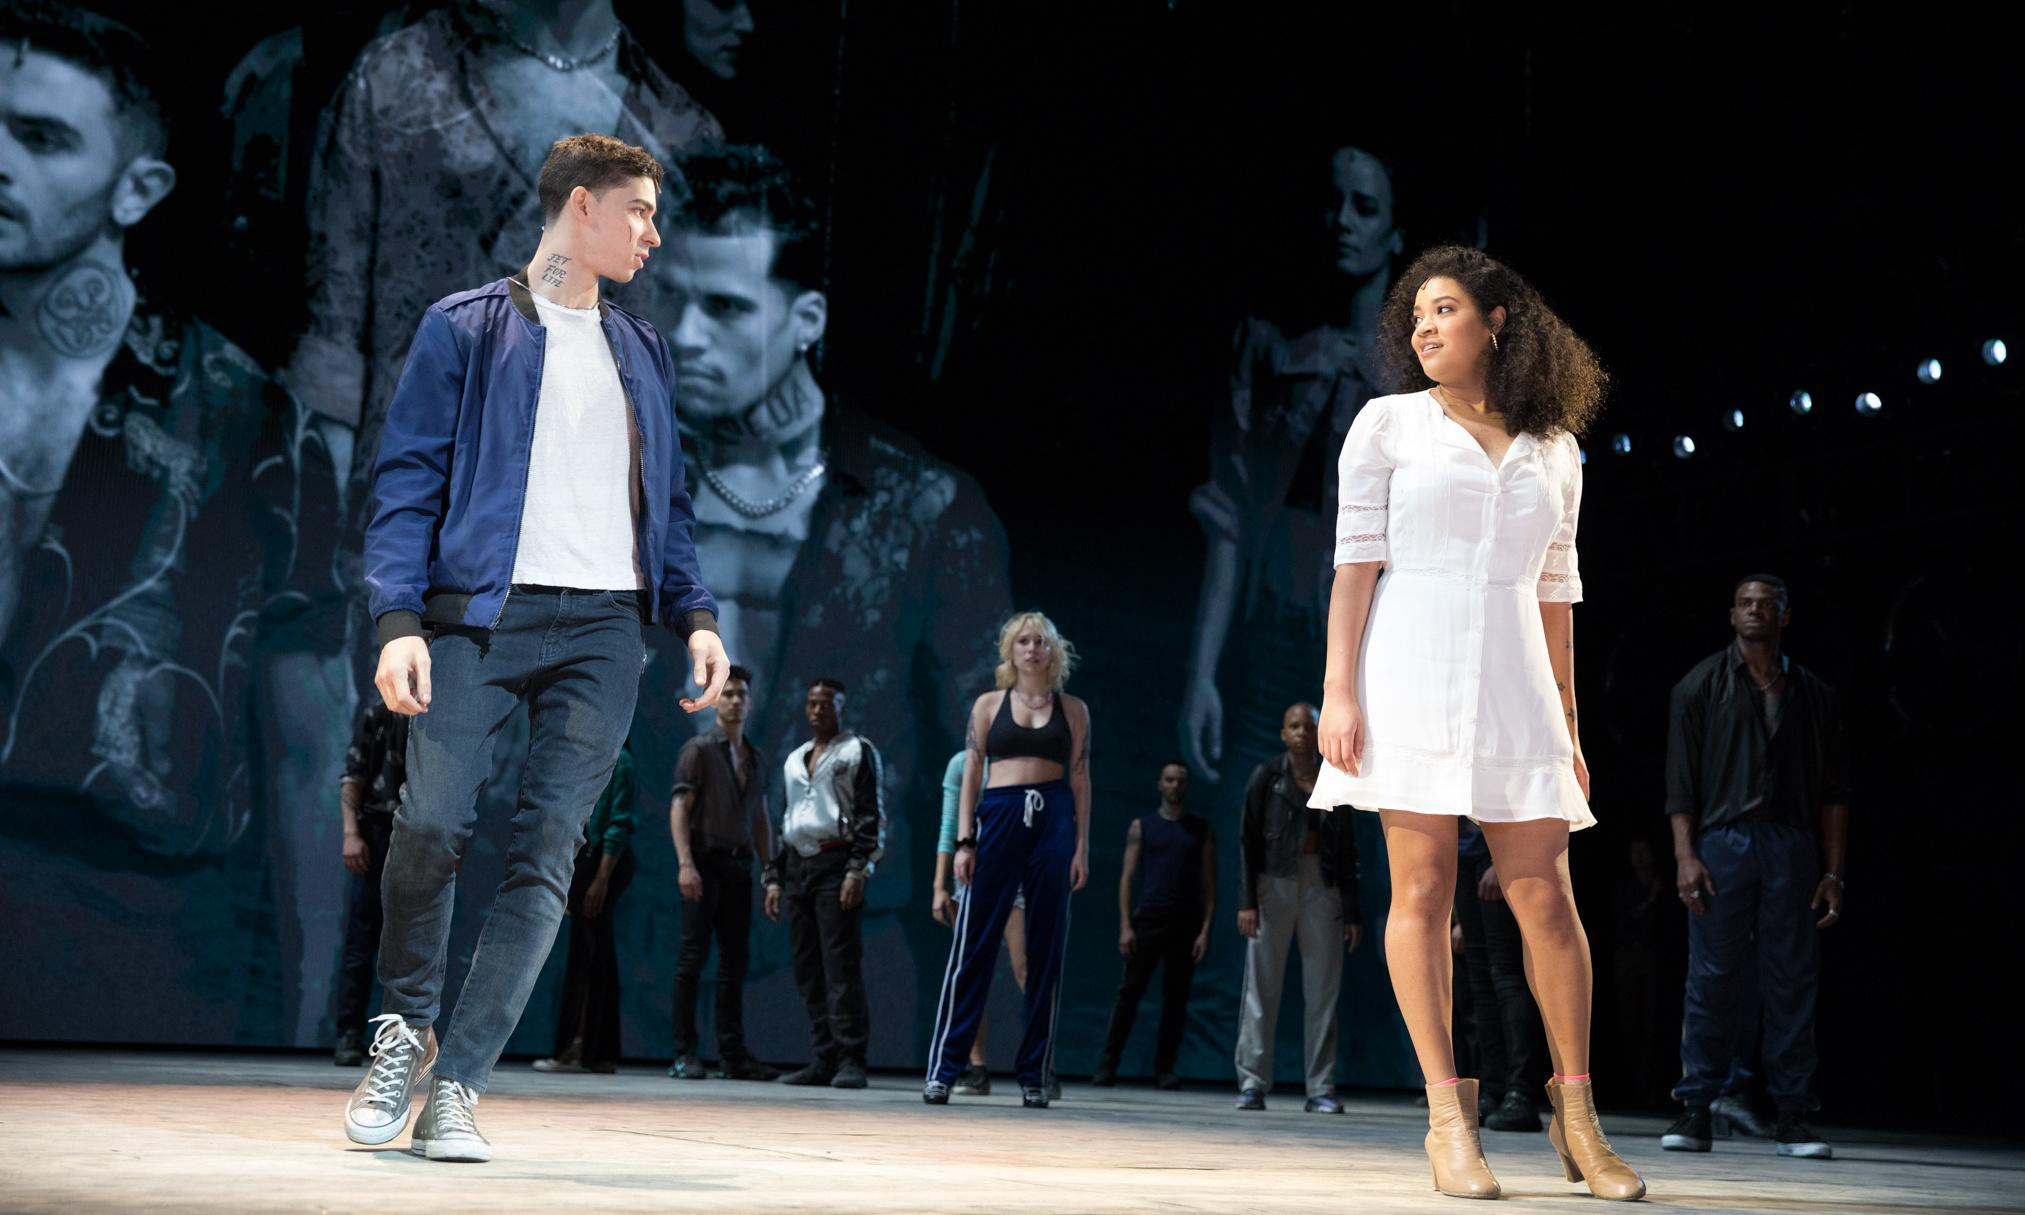 'The violence should be tangible' – Ivo van Hove on roughing up West Side Story